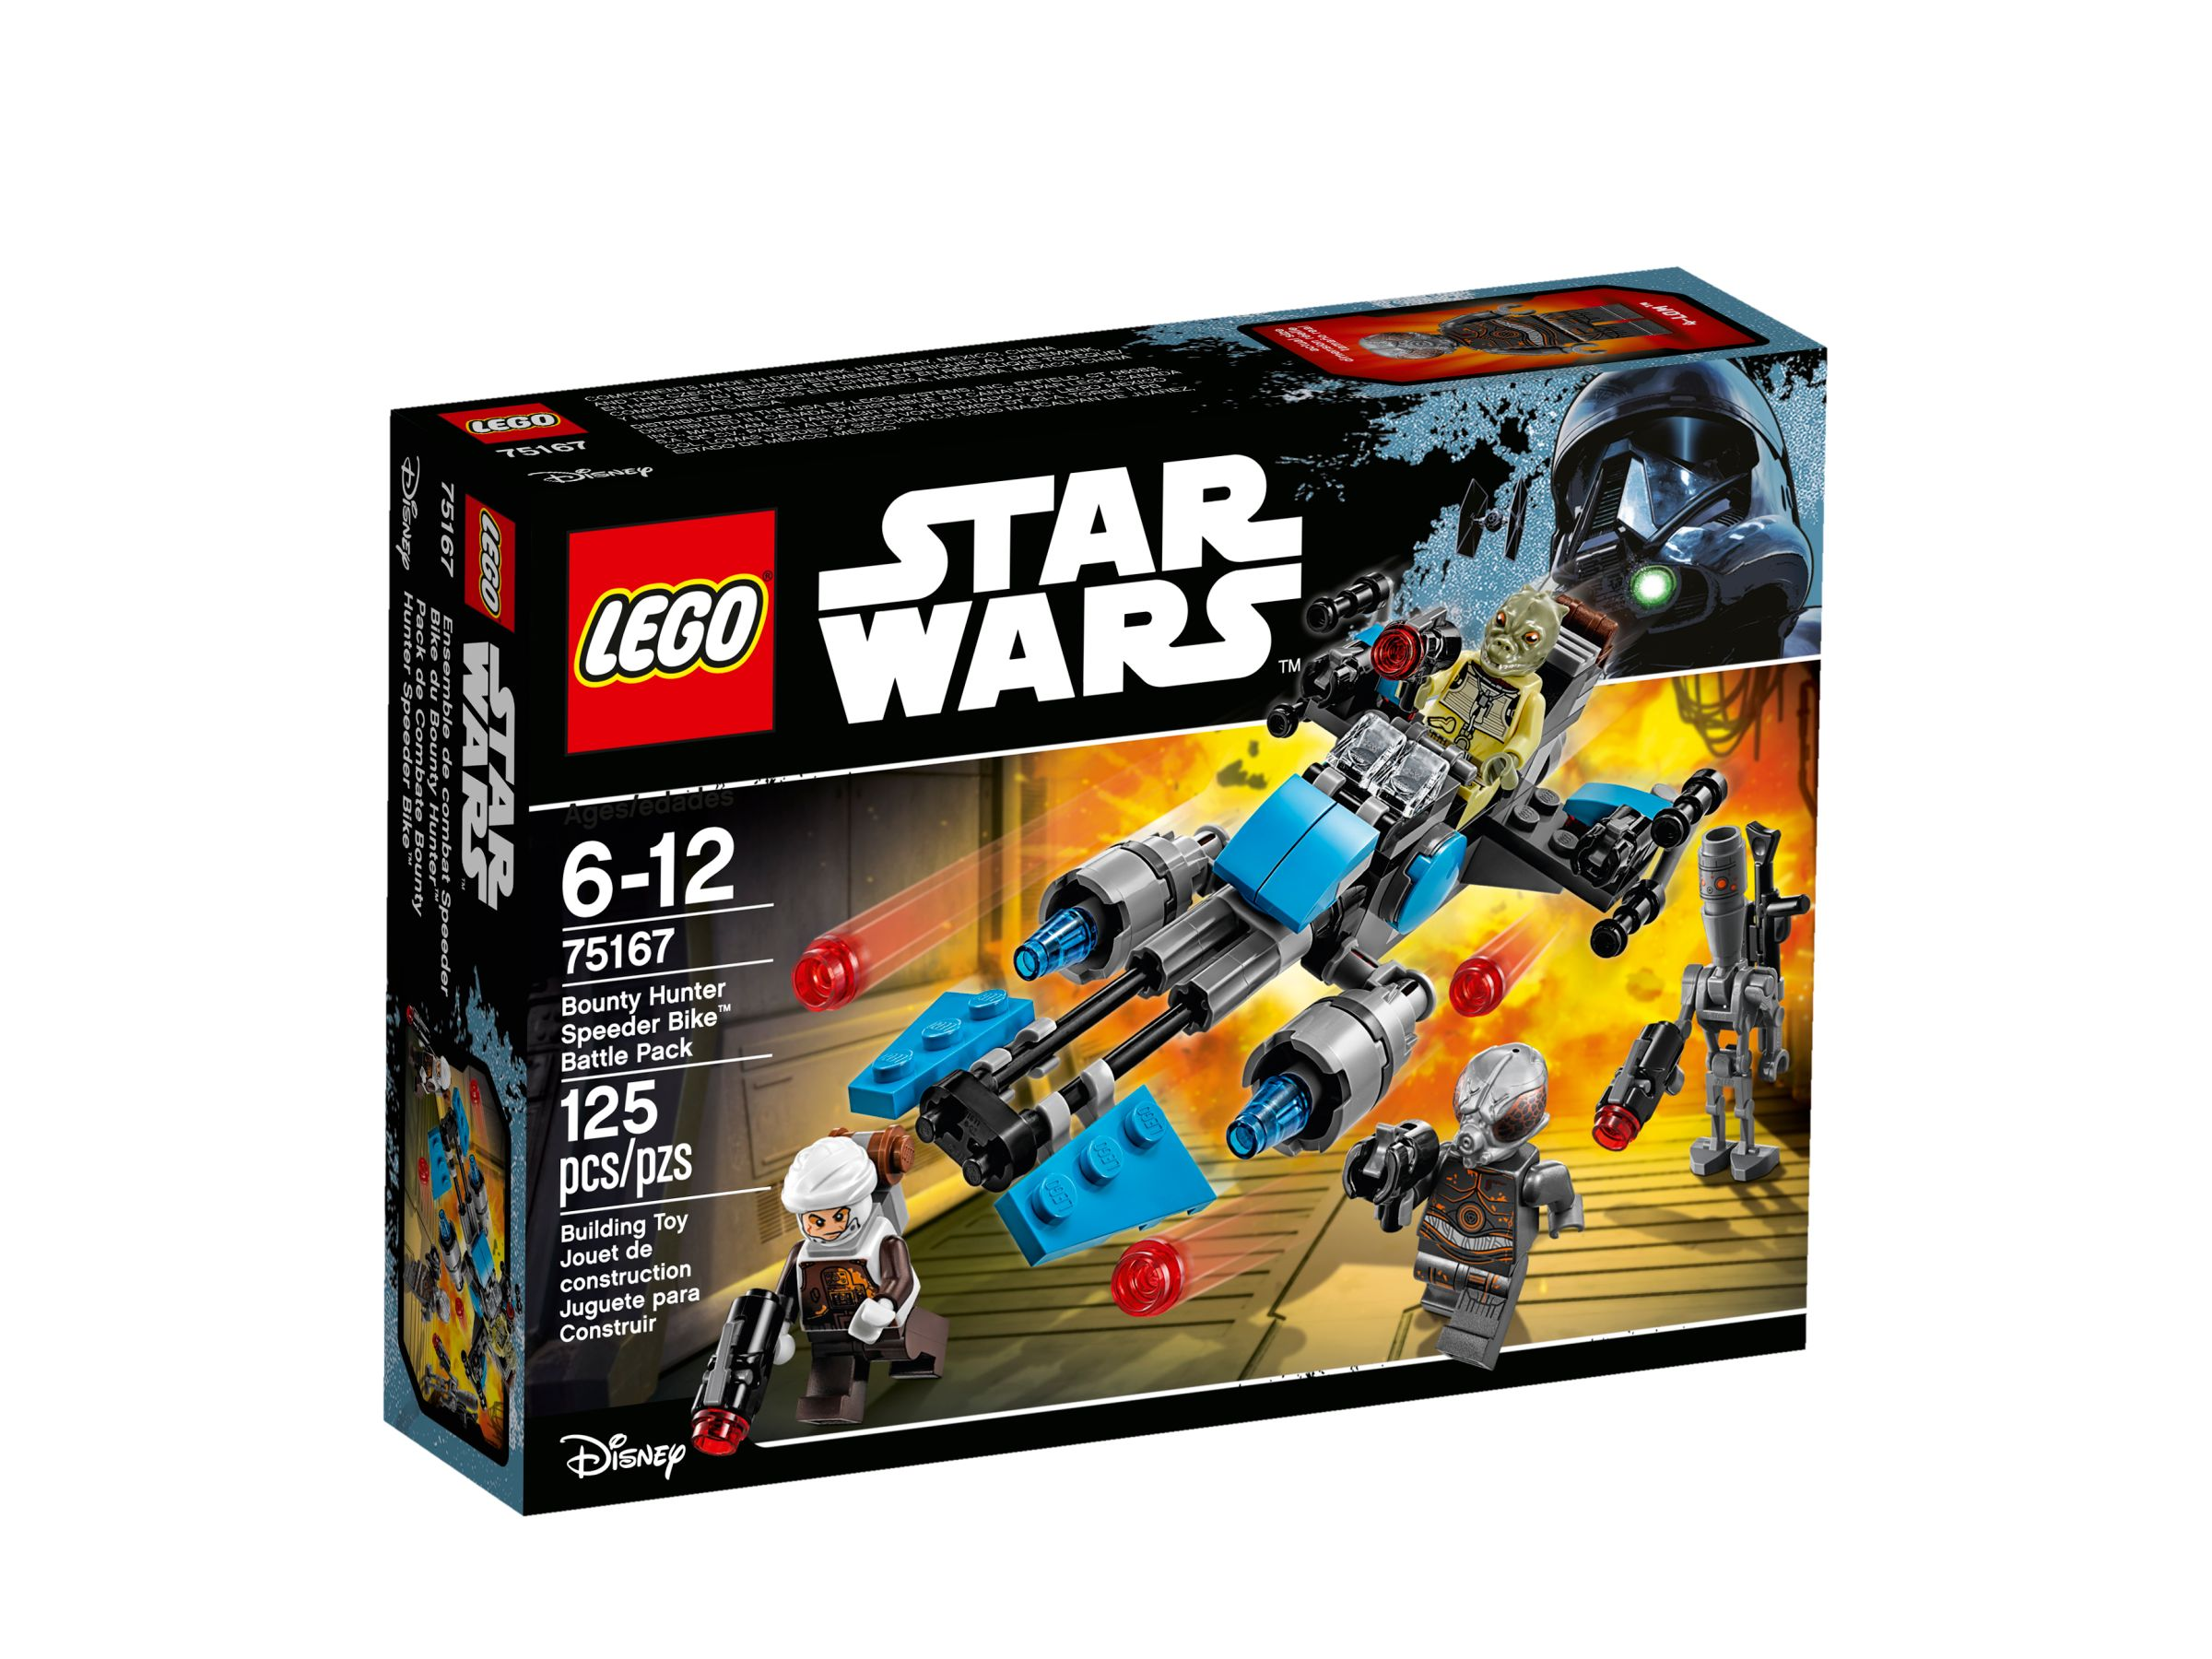 LEGO Star Wars 75167 Bounty Hunter Speeder Bike™ Battle Pack LEGO_75167_alt1.jpg